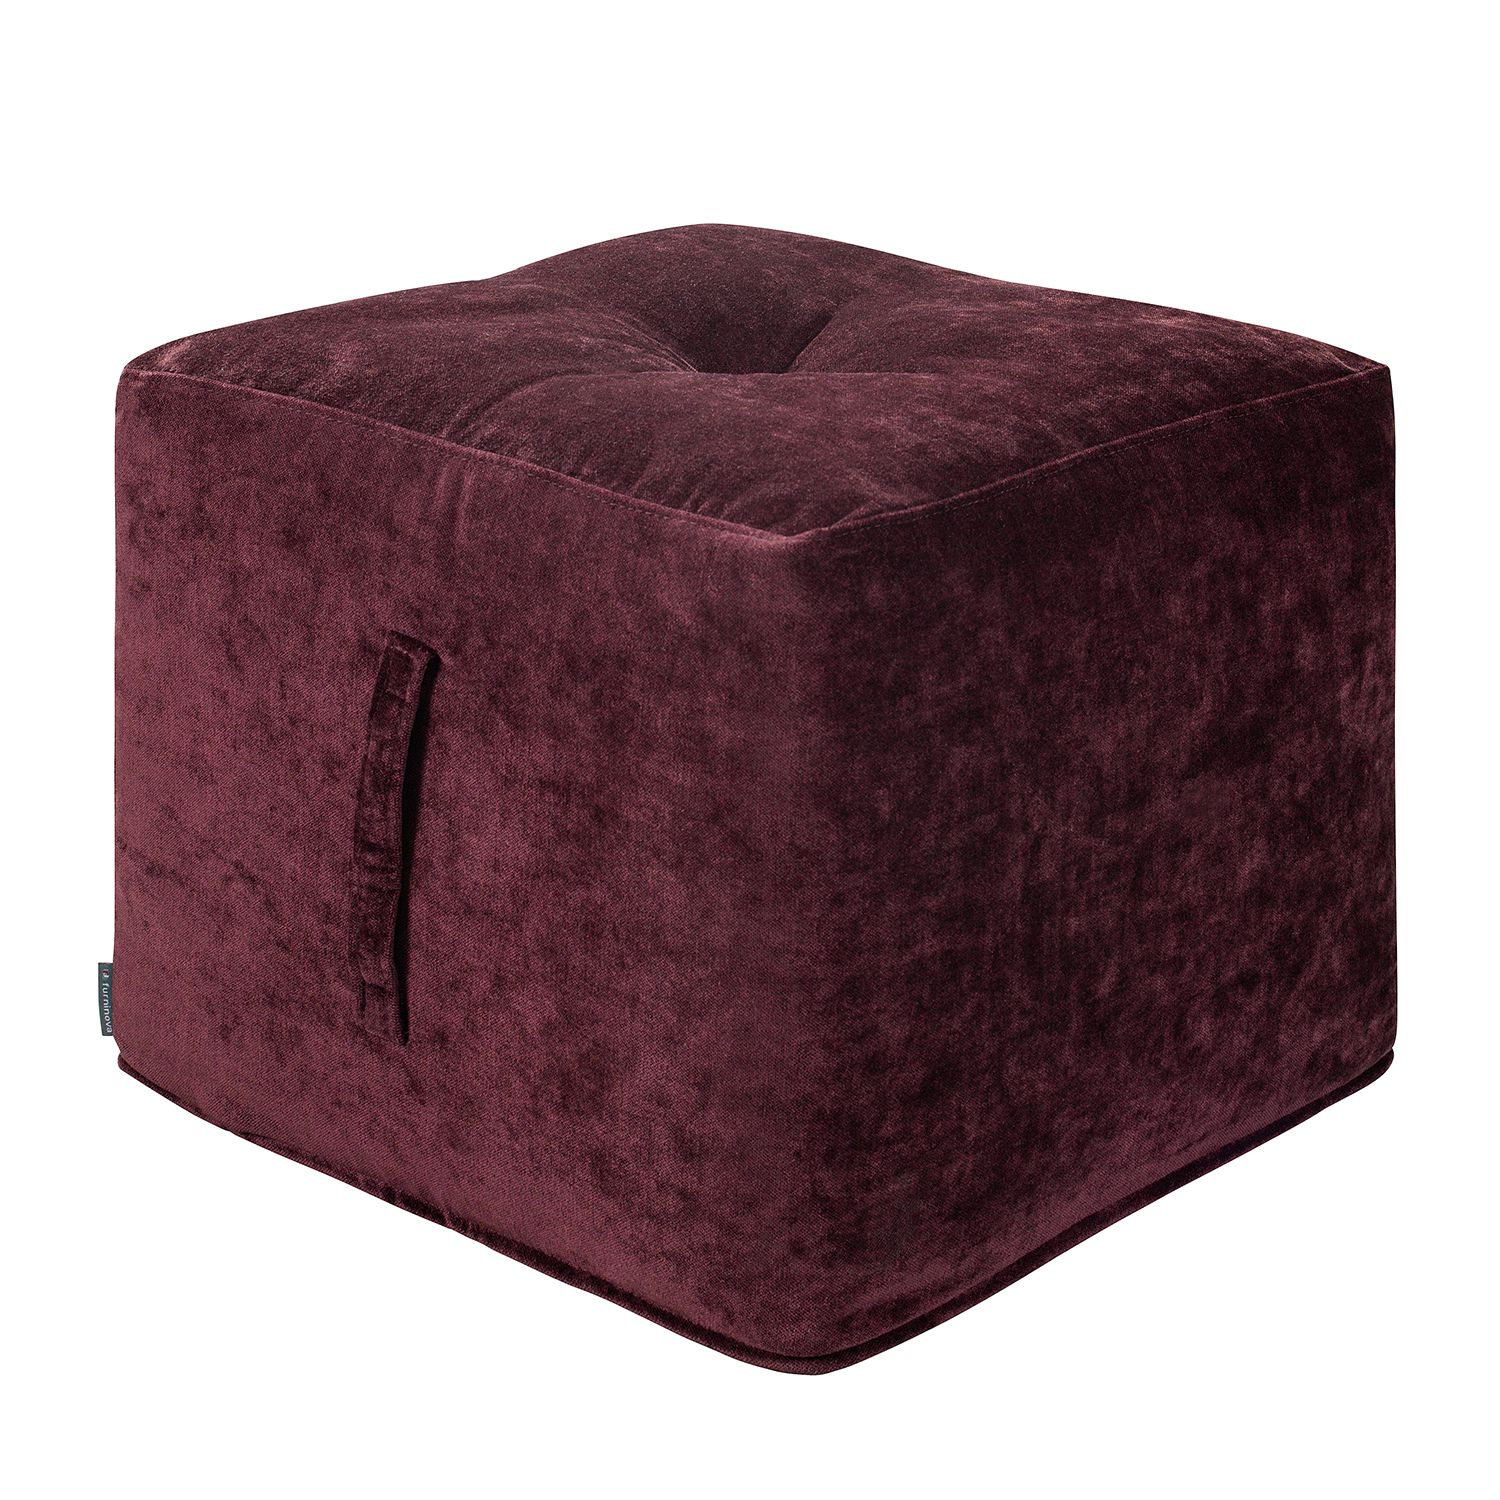 Home 24 - Pouf piton - velours - prune, says who